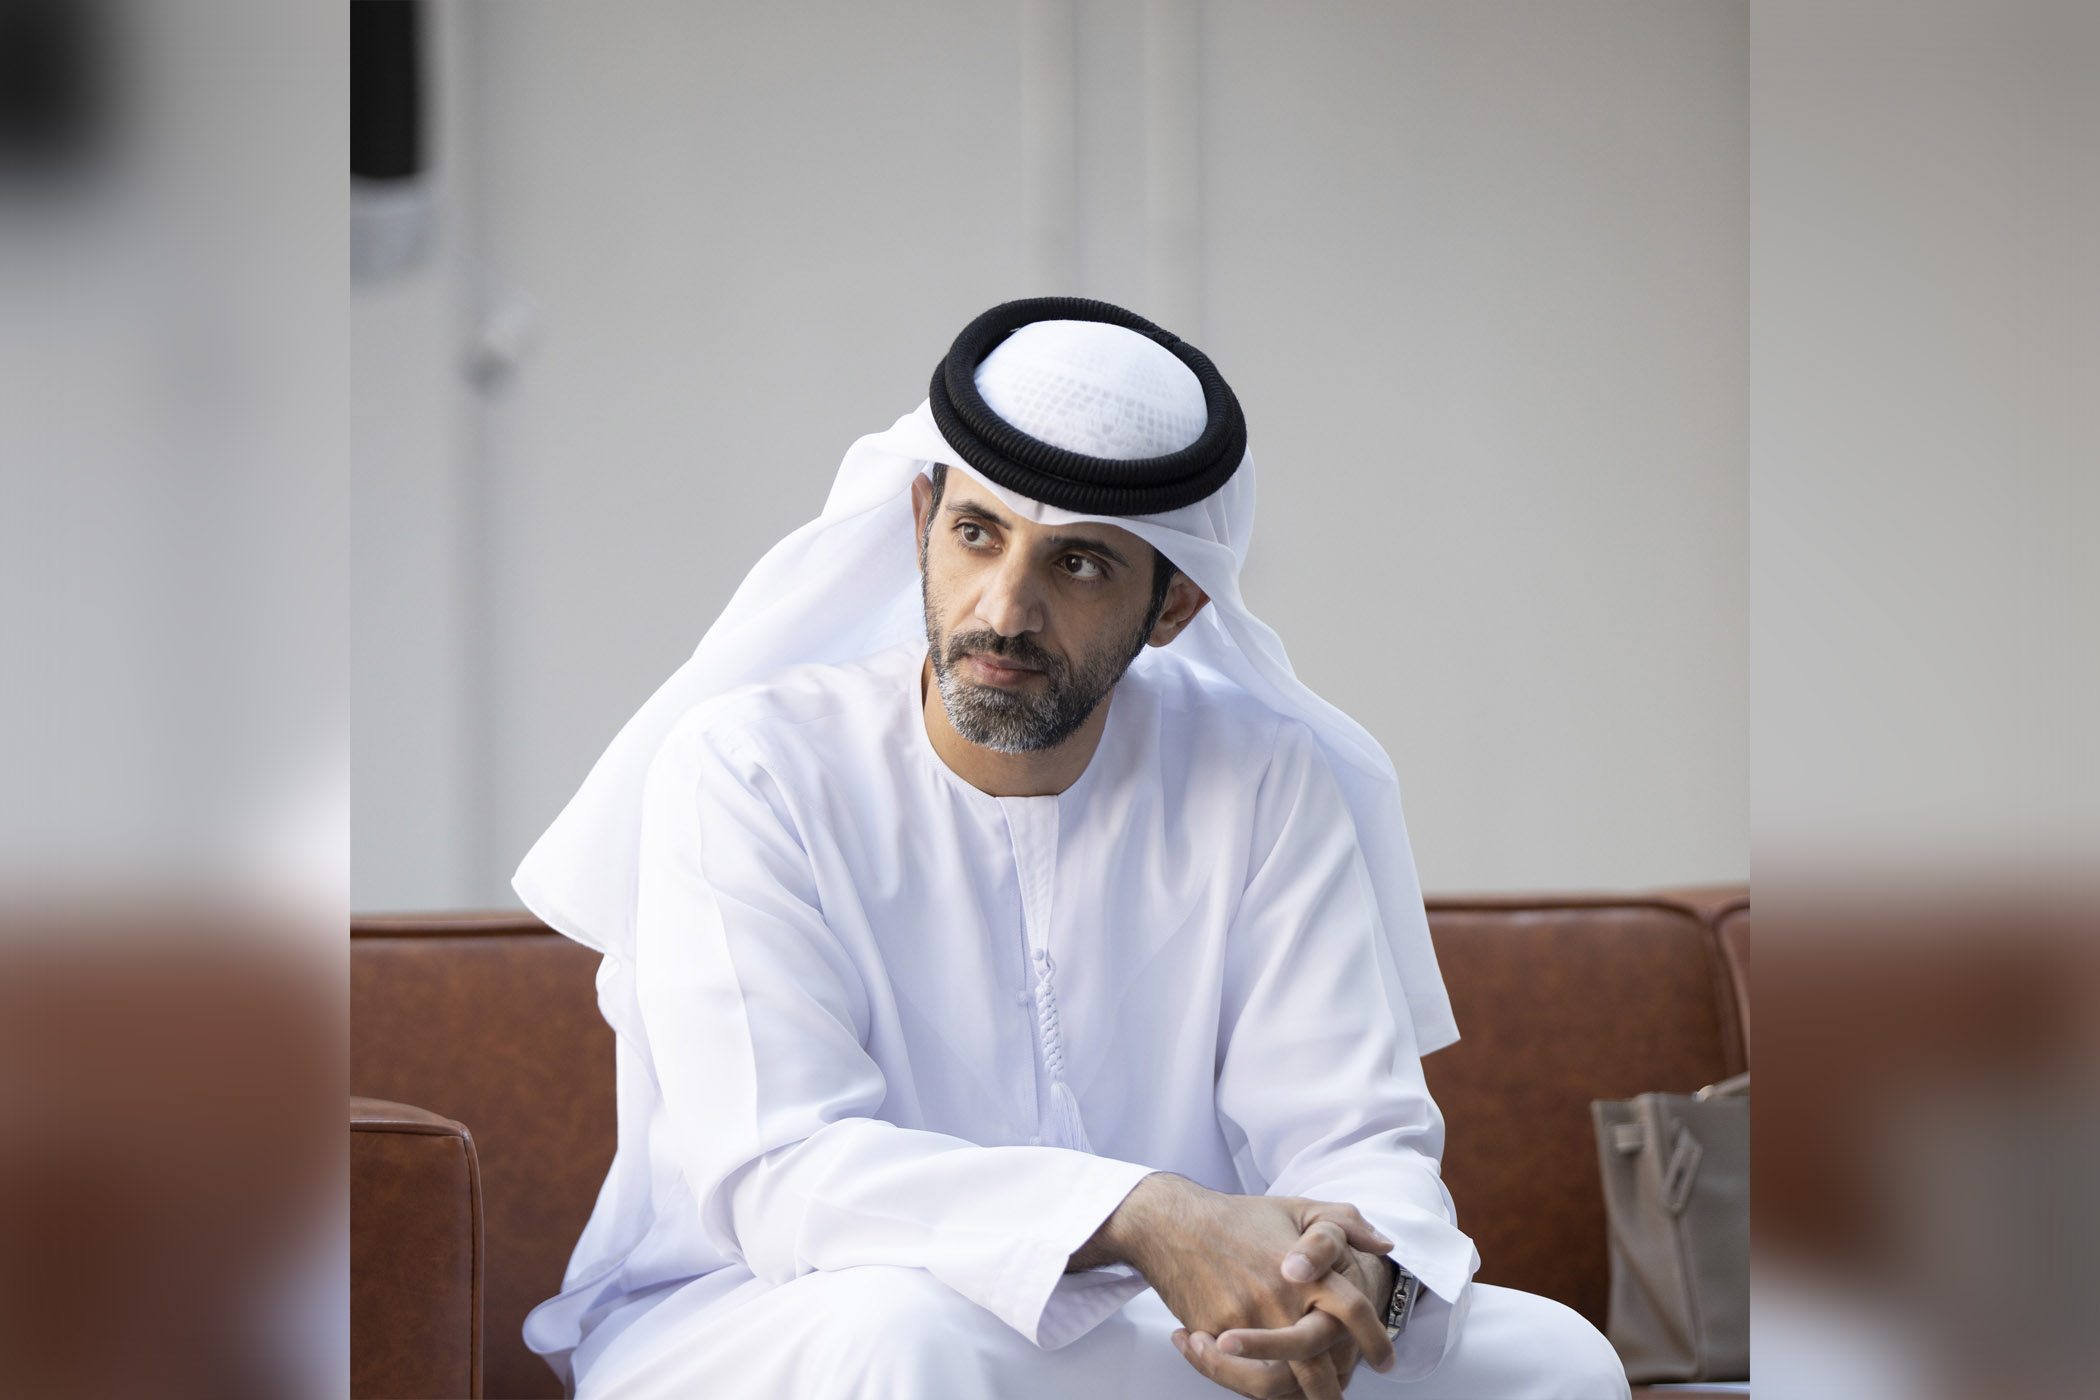 Interview Malek Easa Founder of The Emirates Watch Club